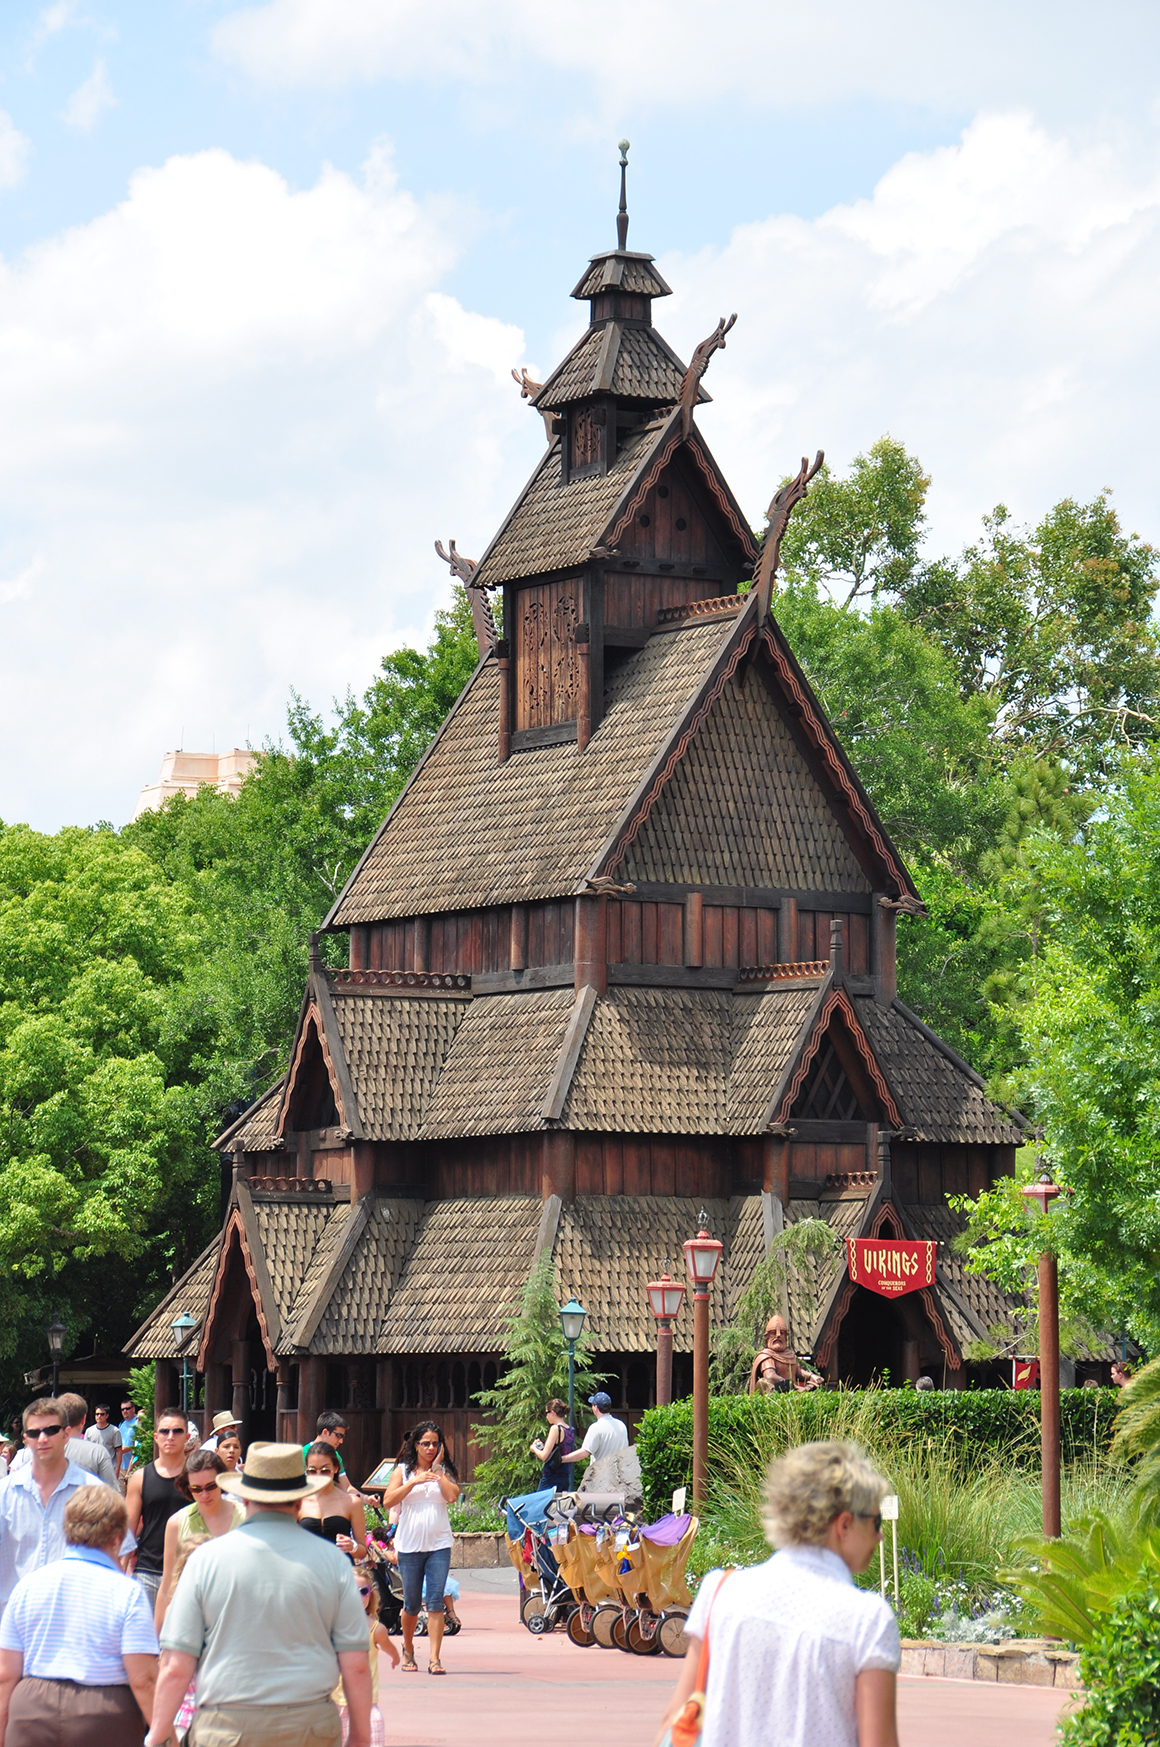 Gol stave church replica, Epcot